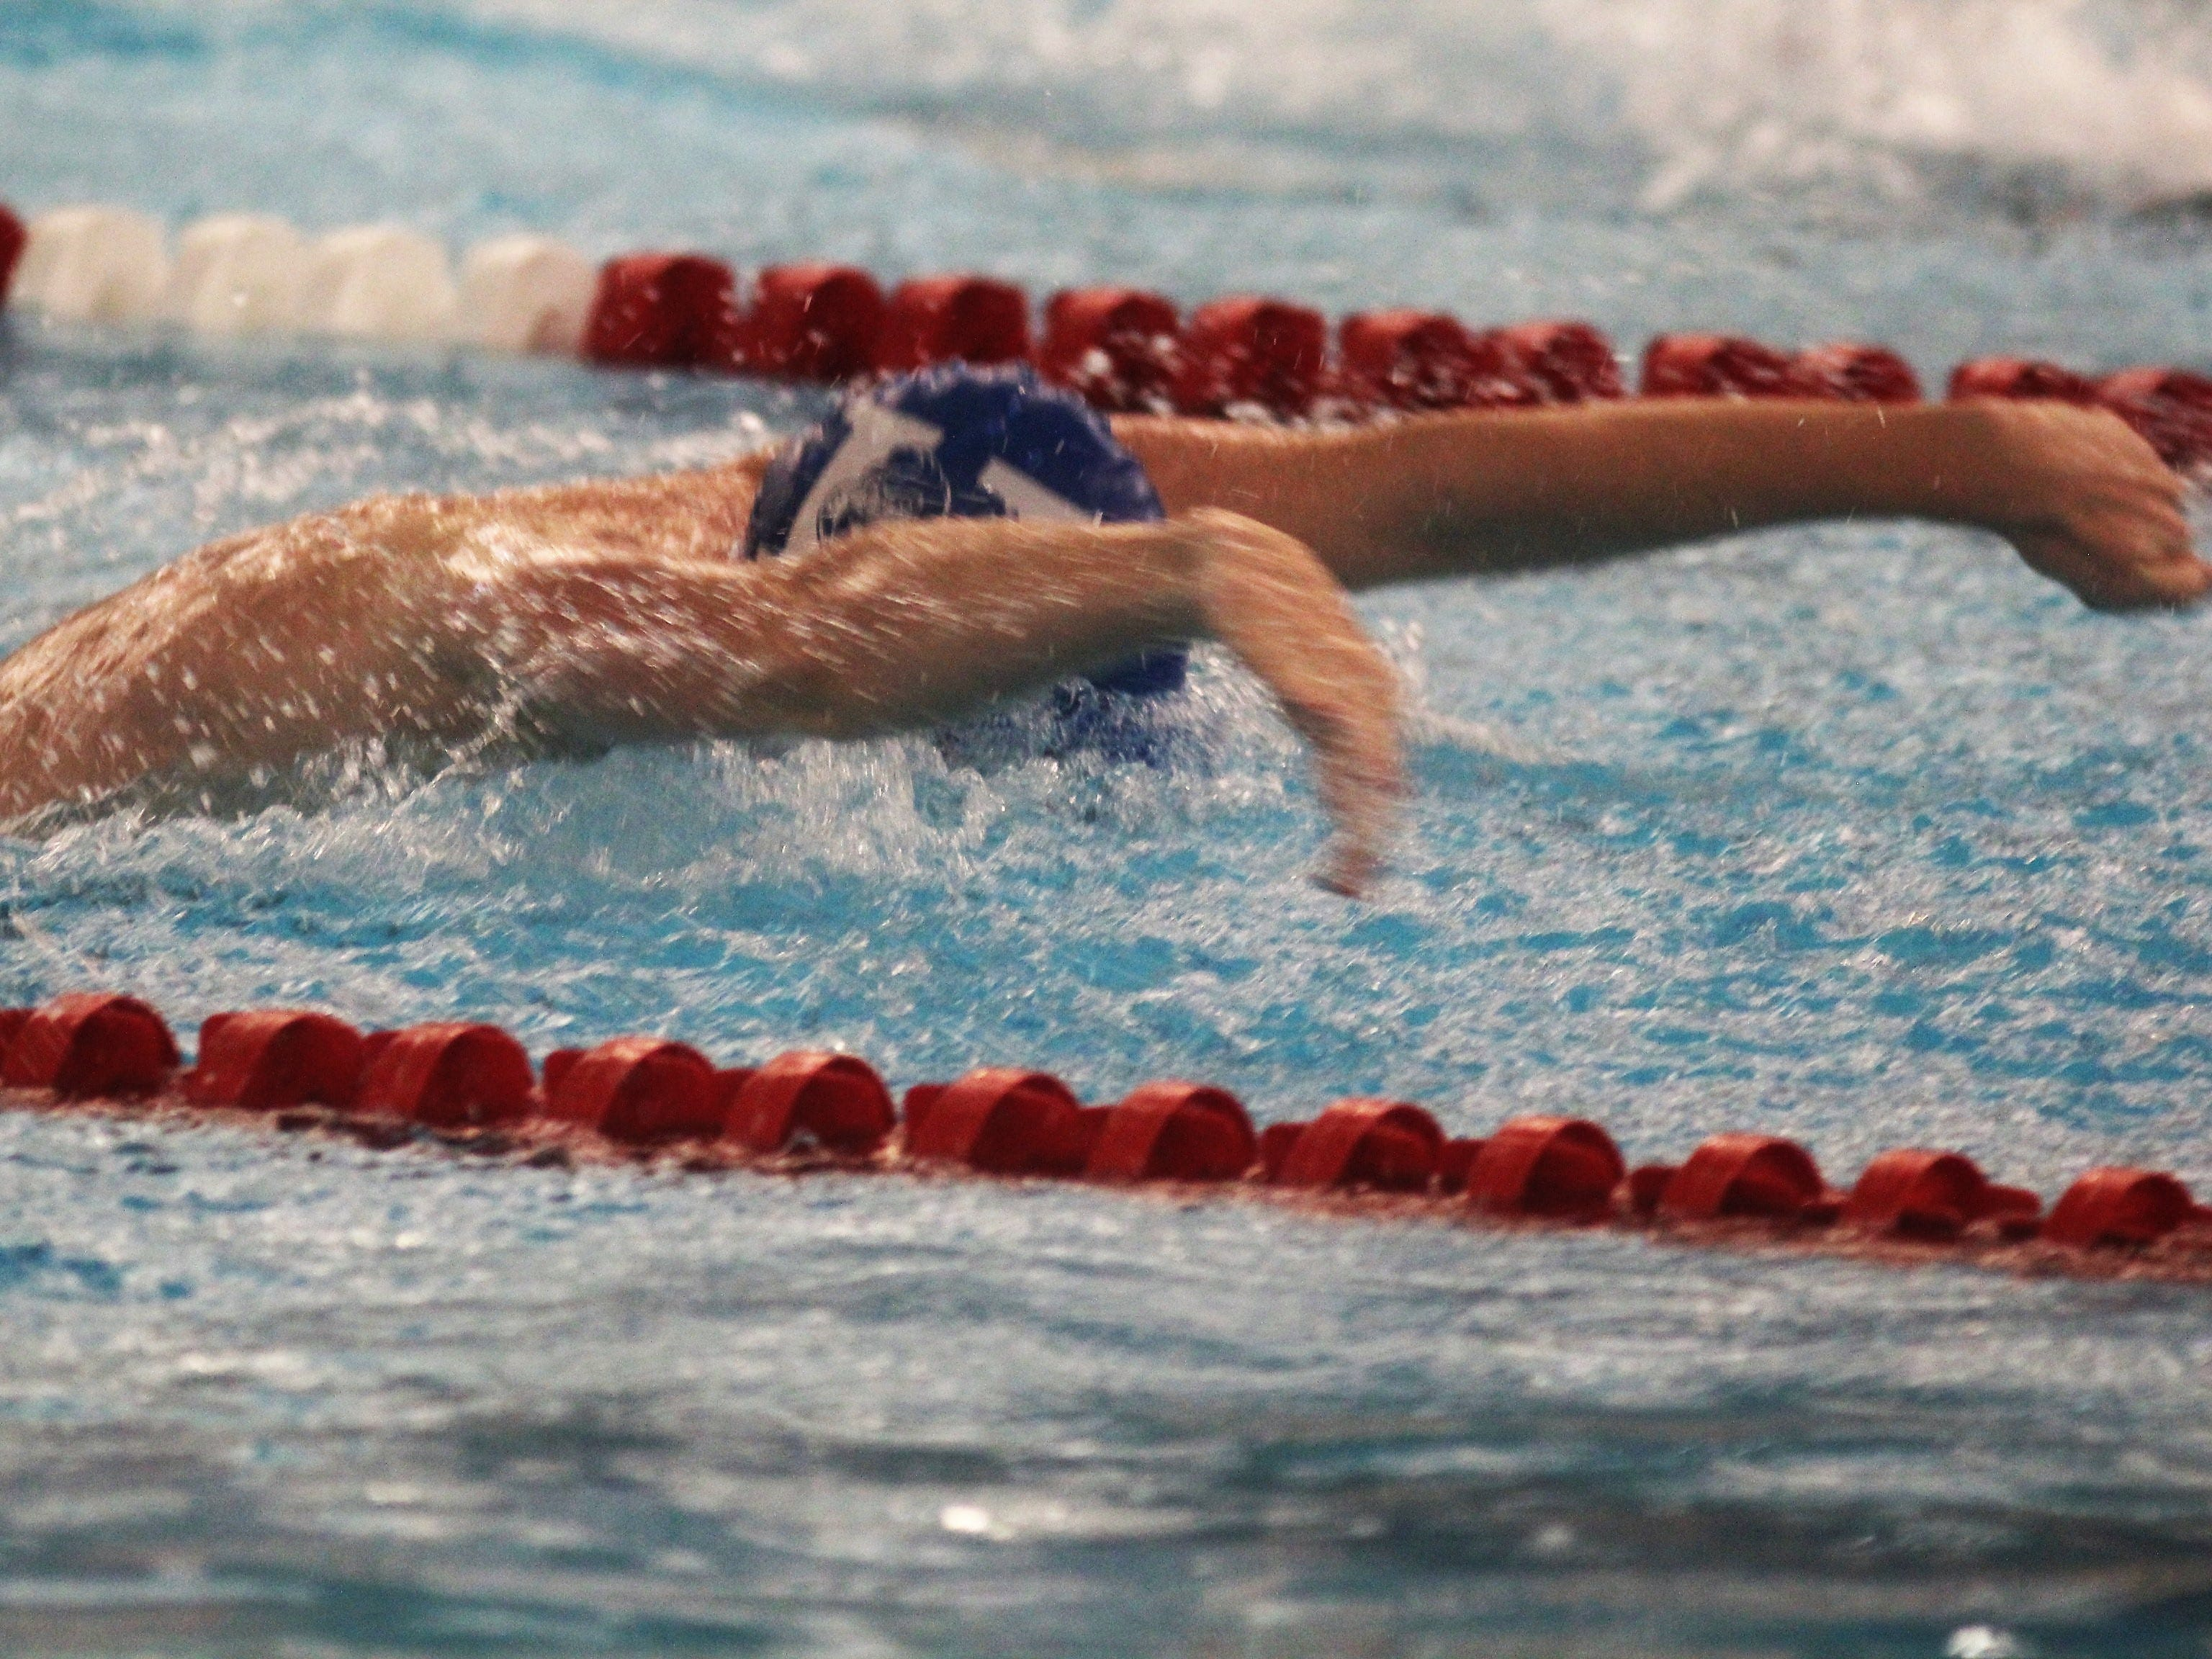 CovCath sophomore Parker Knollman in the medley relay during the KHSAA boys state swimming and diving championships Feb. 22, 2019 at the University of Louisville.